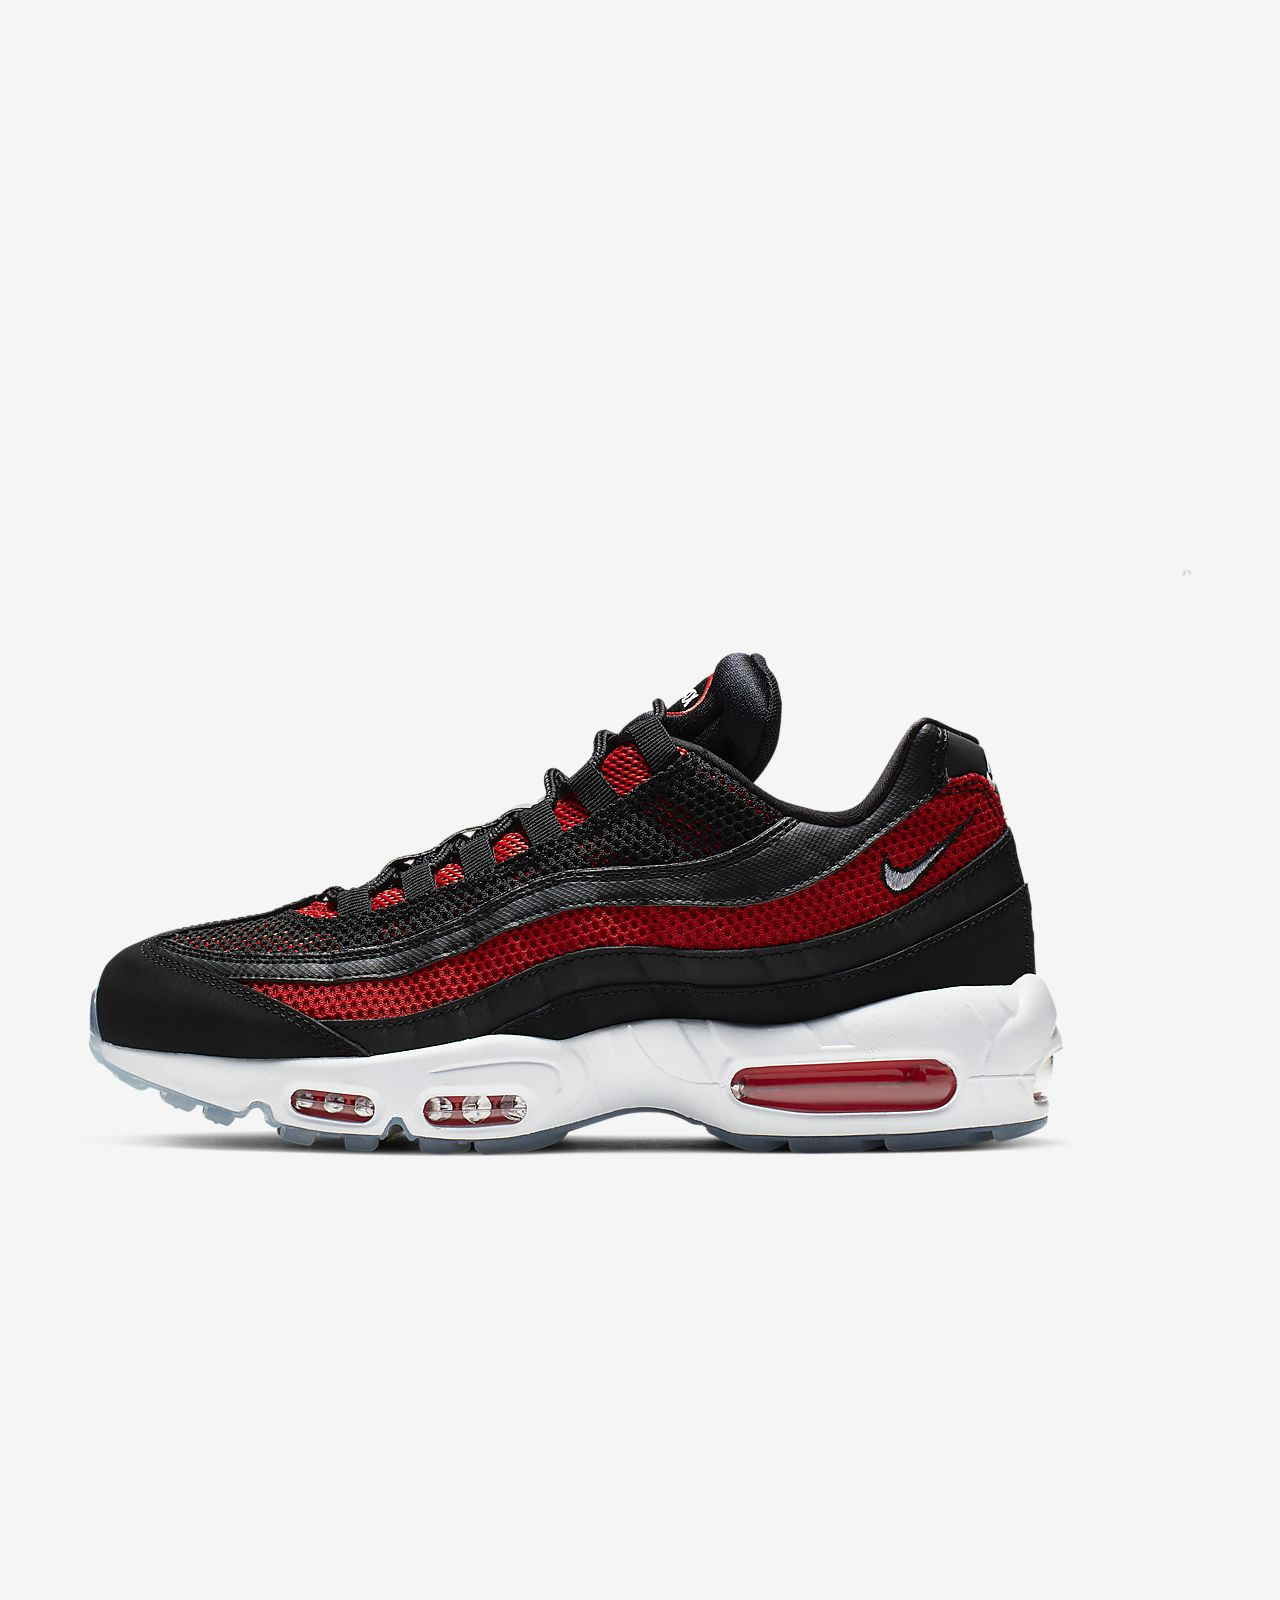 wholesale dealer c5d0a 3d89a ... Chaussure Nike Air Max 95 Essential pour Homme